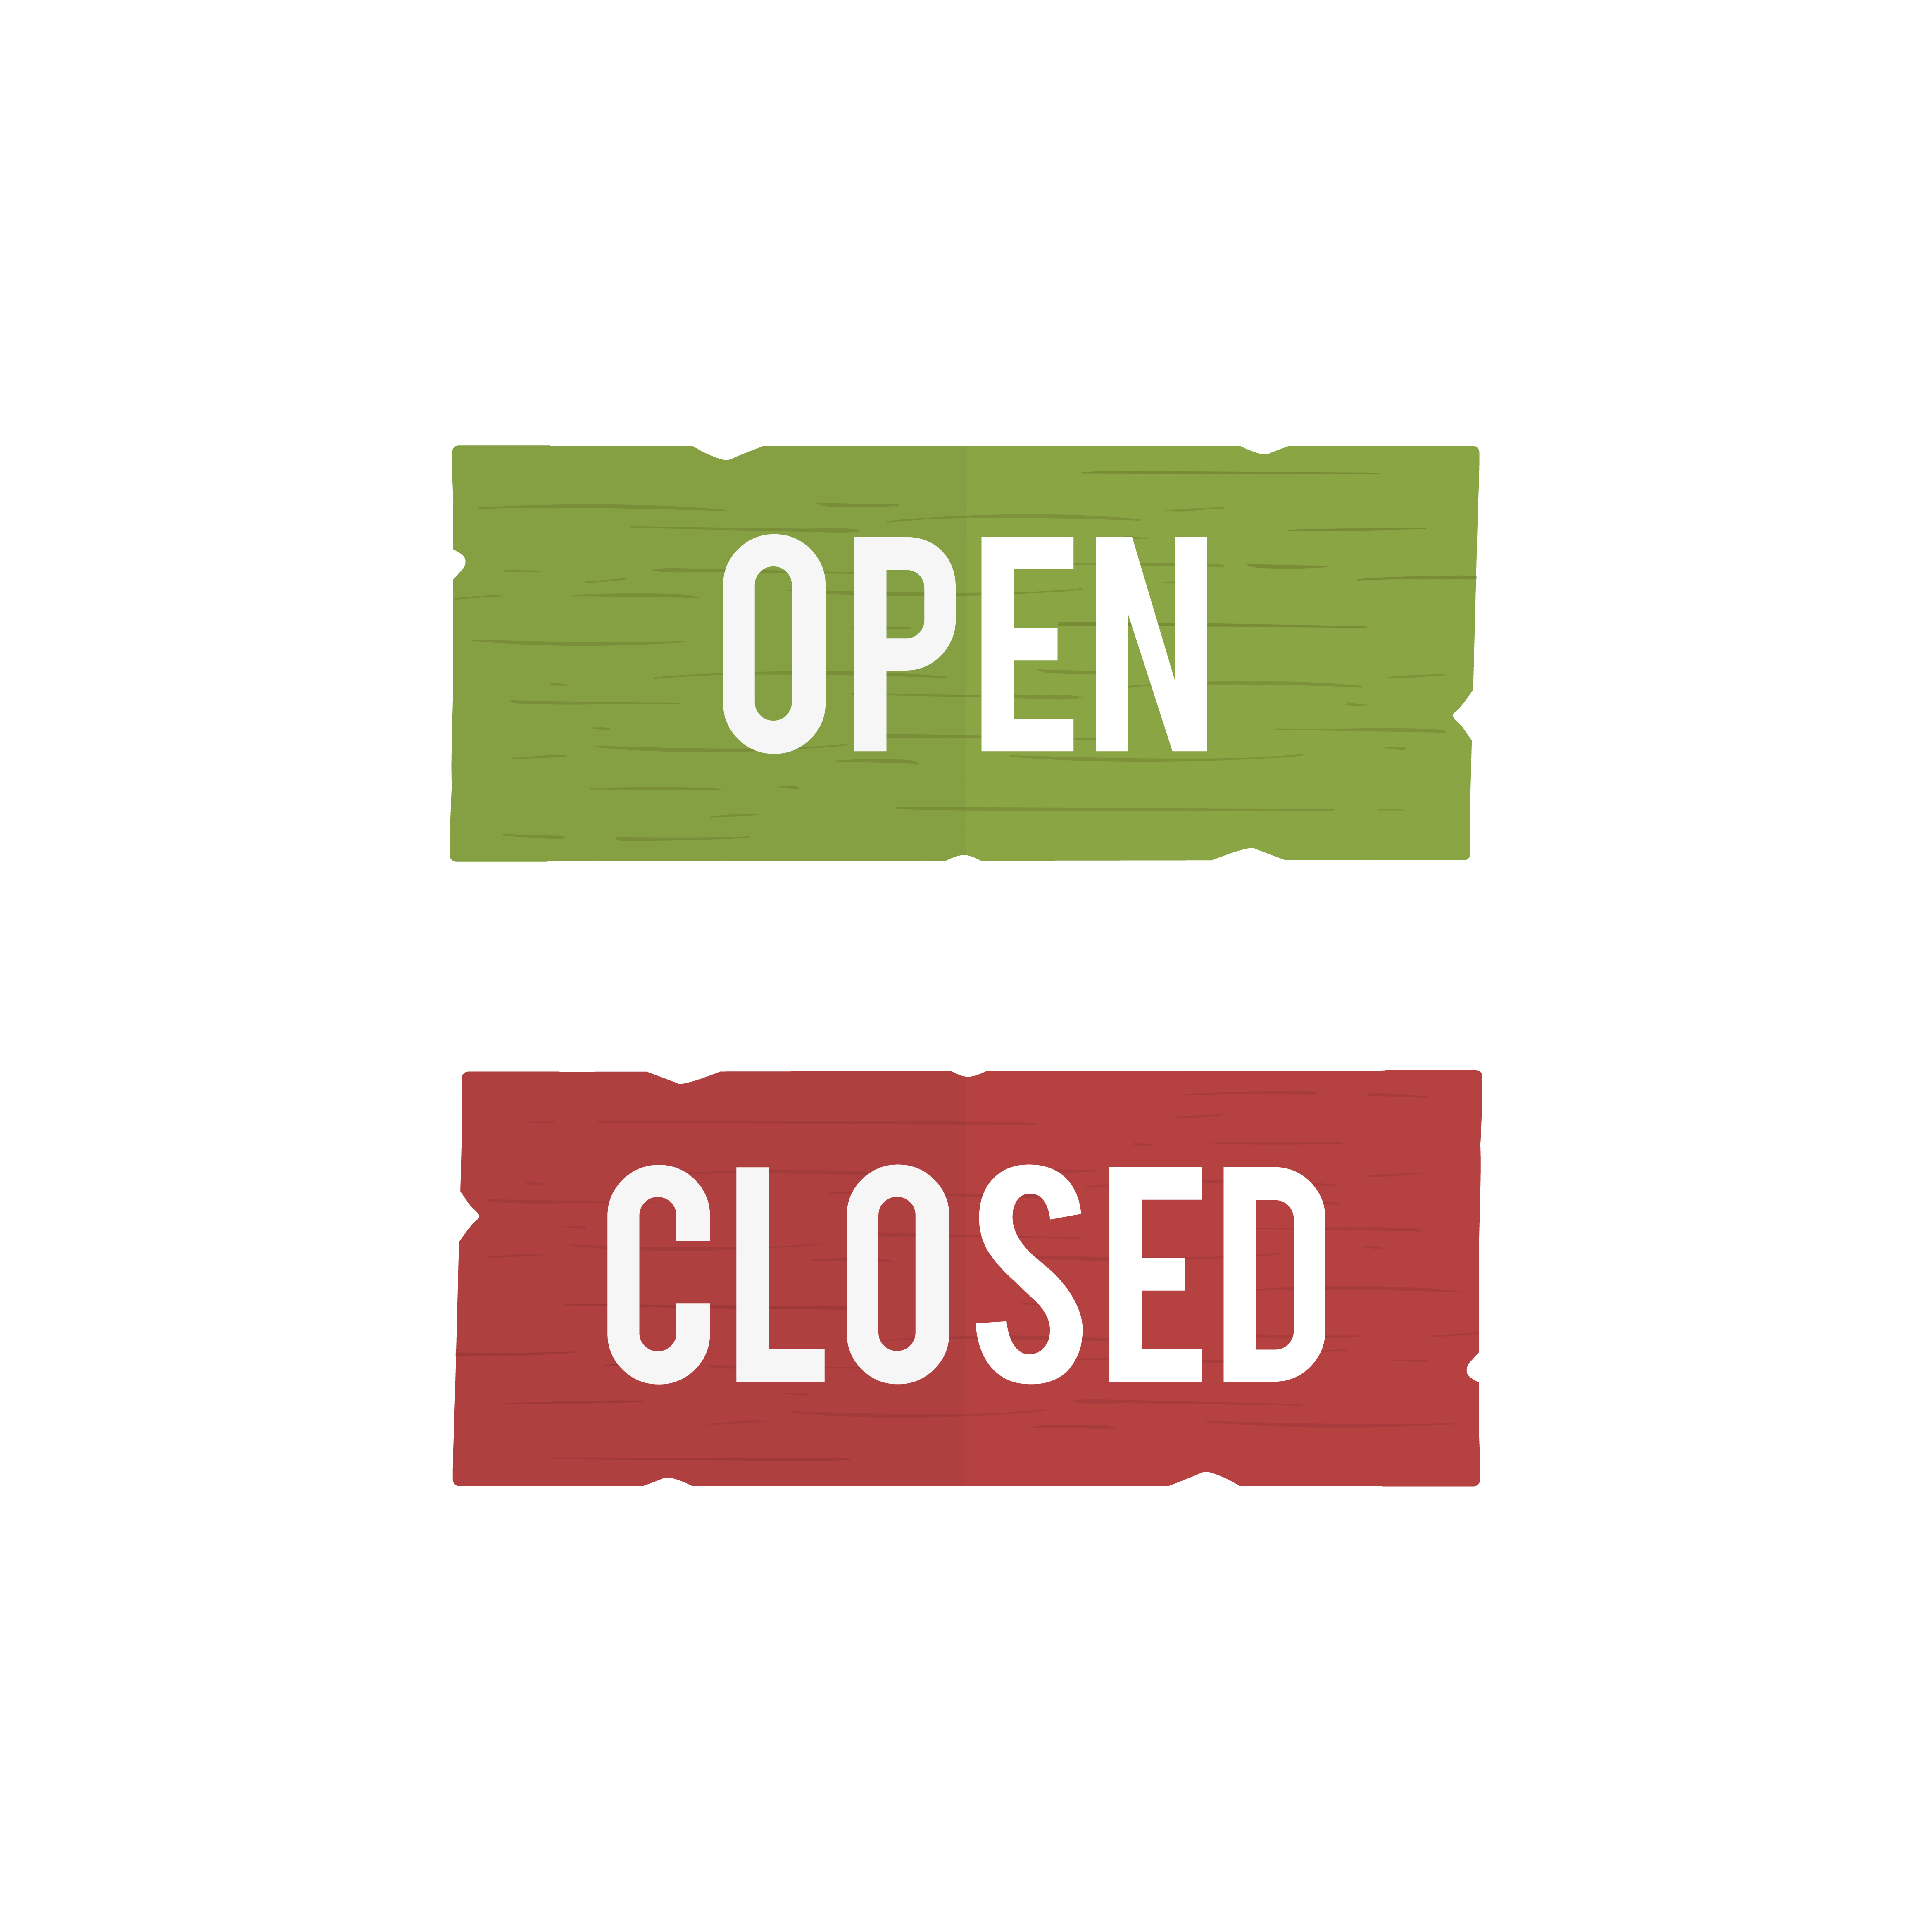 Opening and Closing times